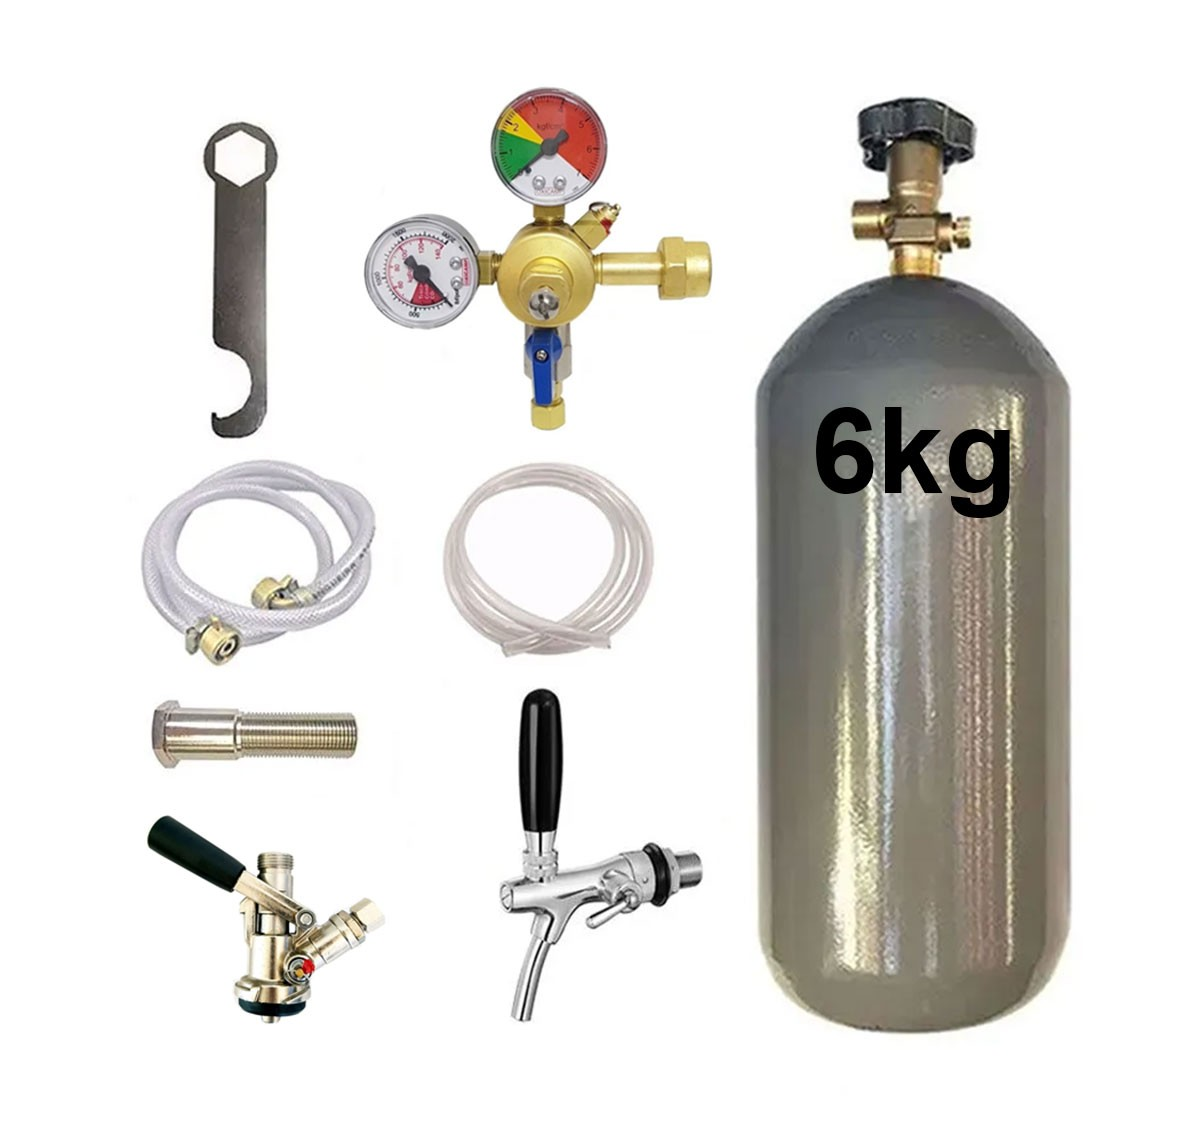 KIT DE EXTRAÇÃO CO2 6KG COM REGULADOR DE 1 VIA PARA CHOPP COM TORNEIRA COMPLETO